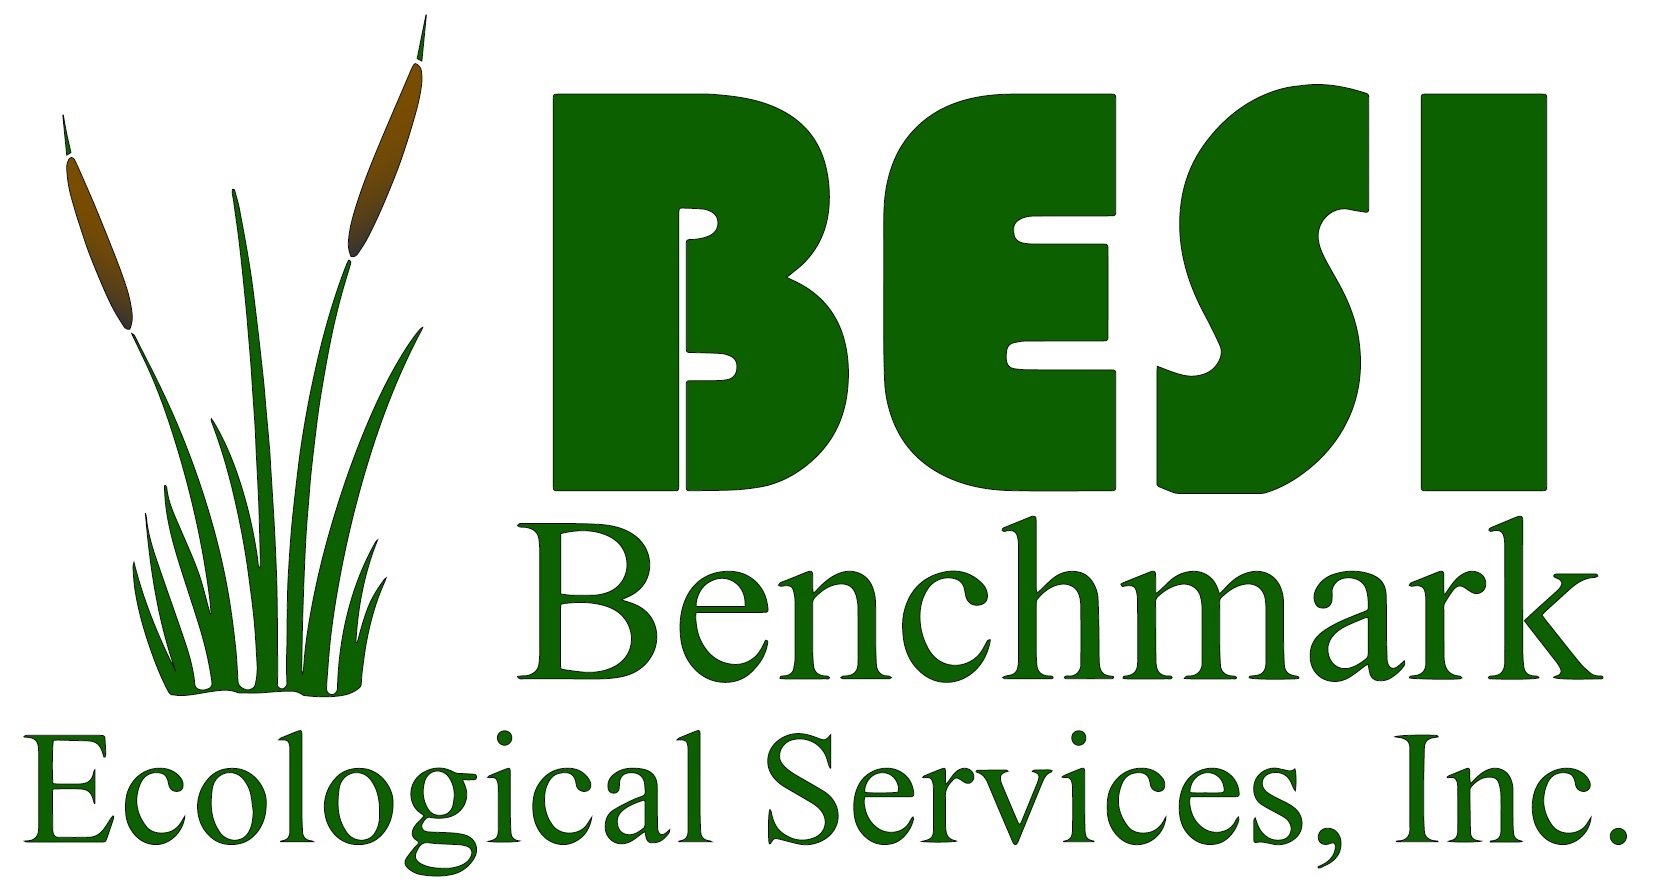 Benchmark Ecological Services, Inc.